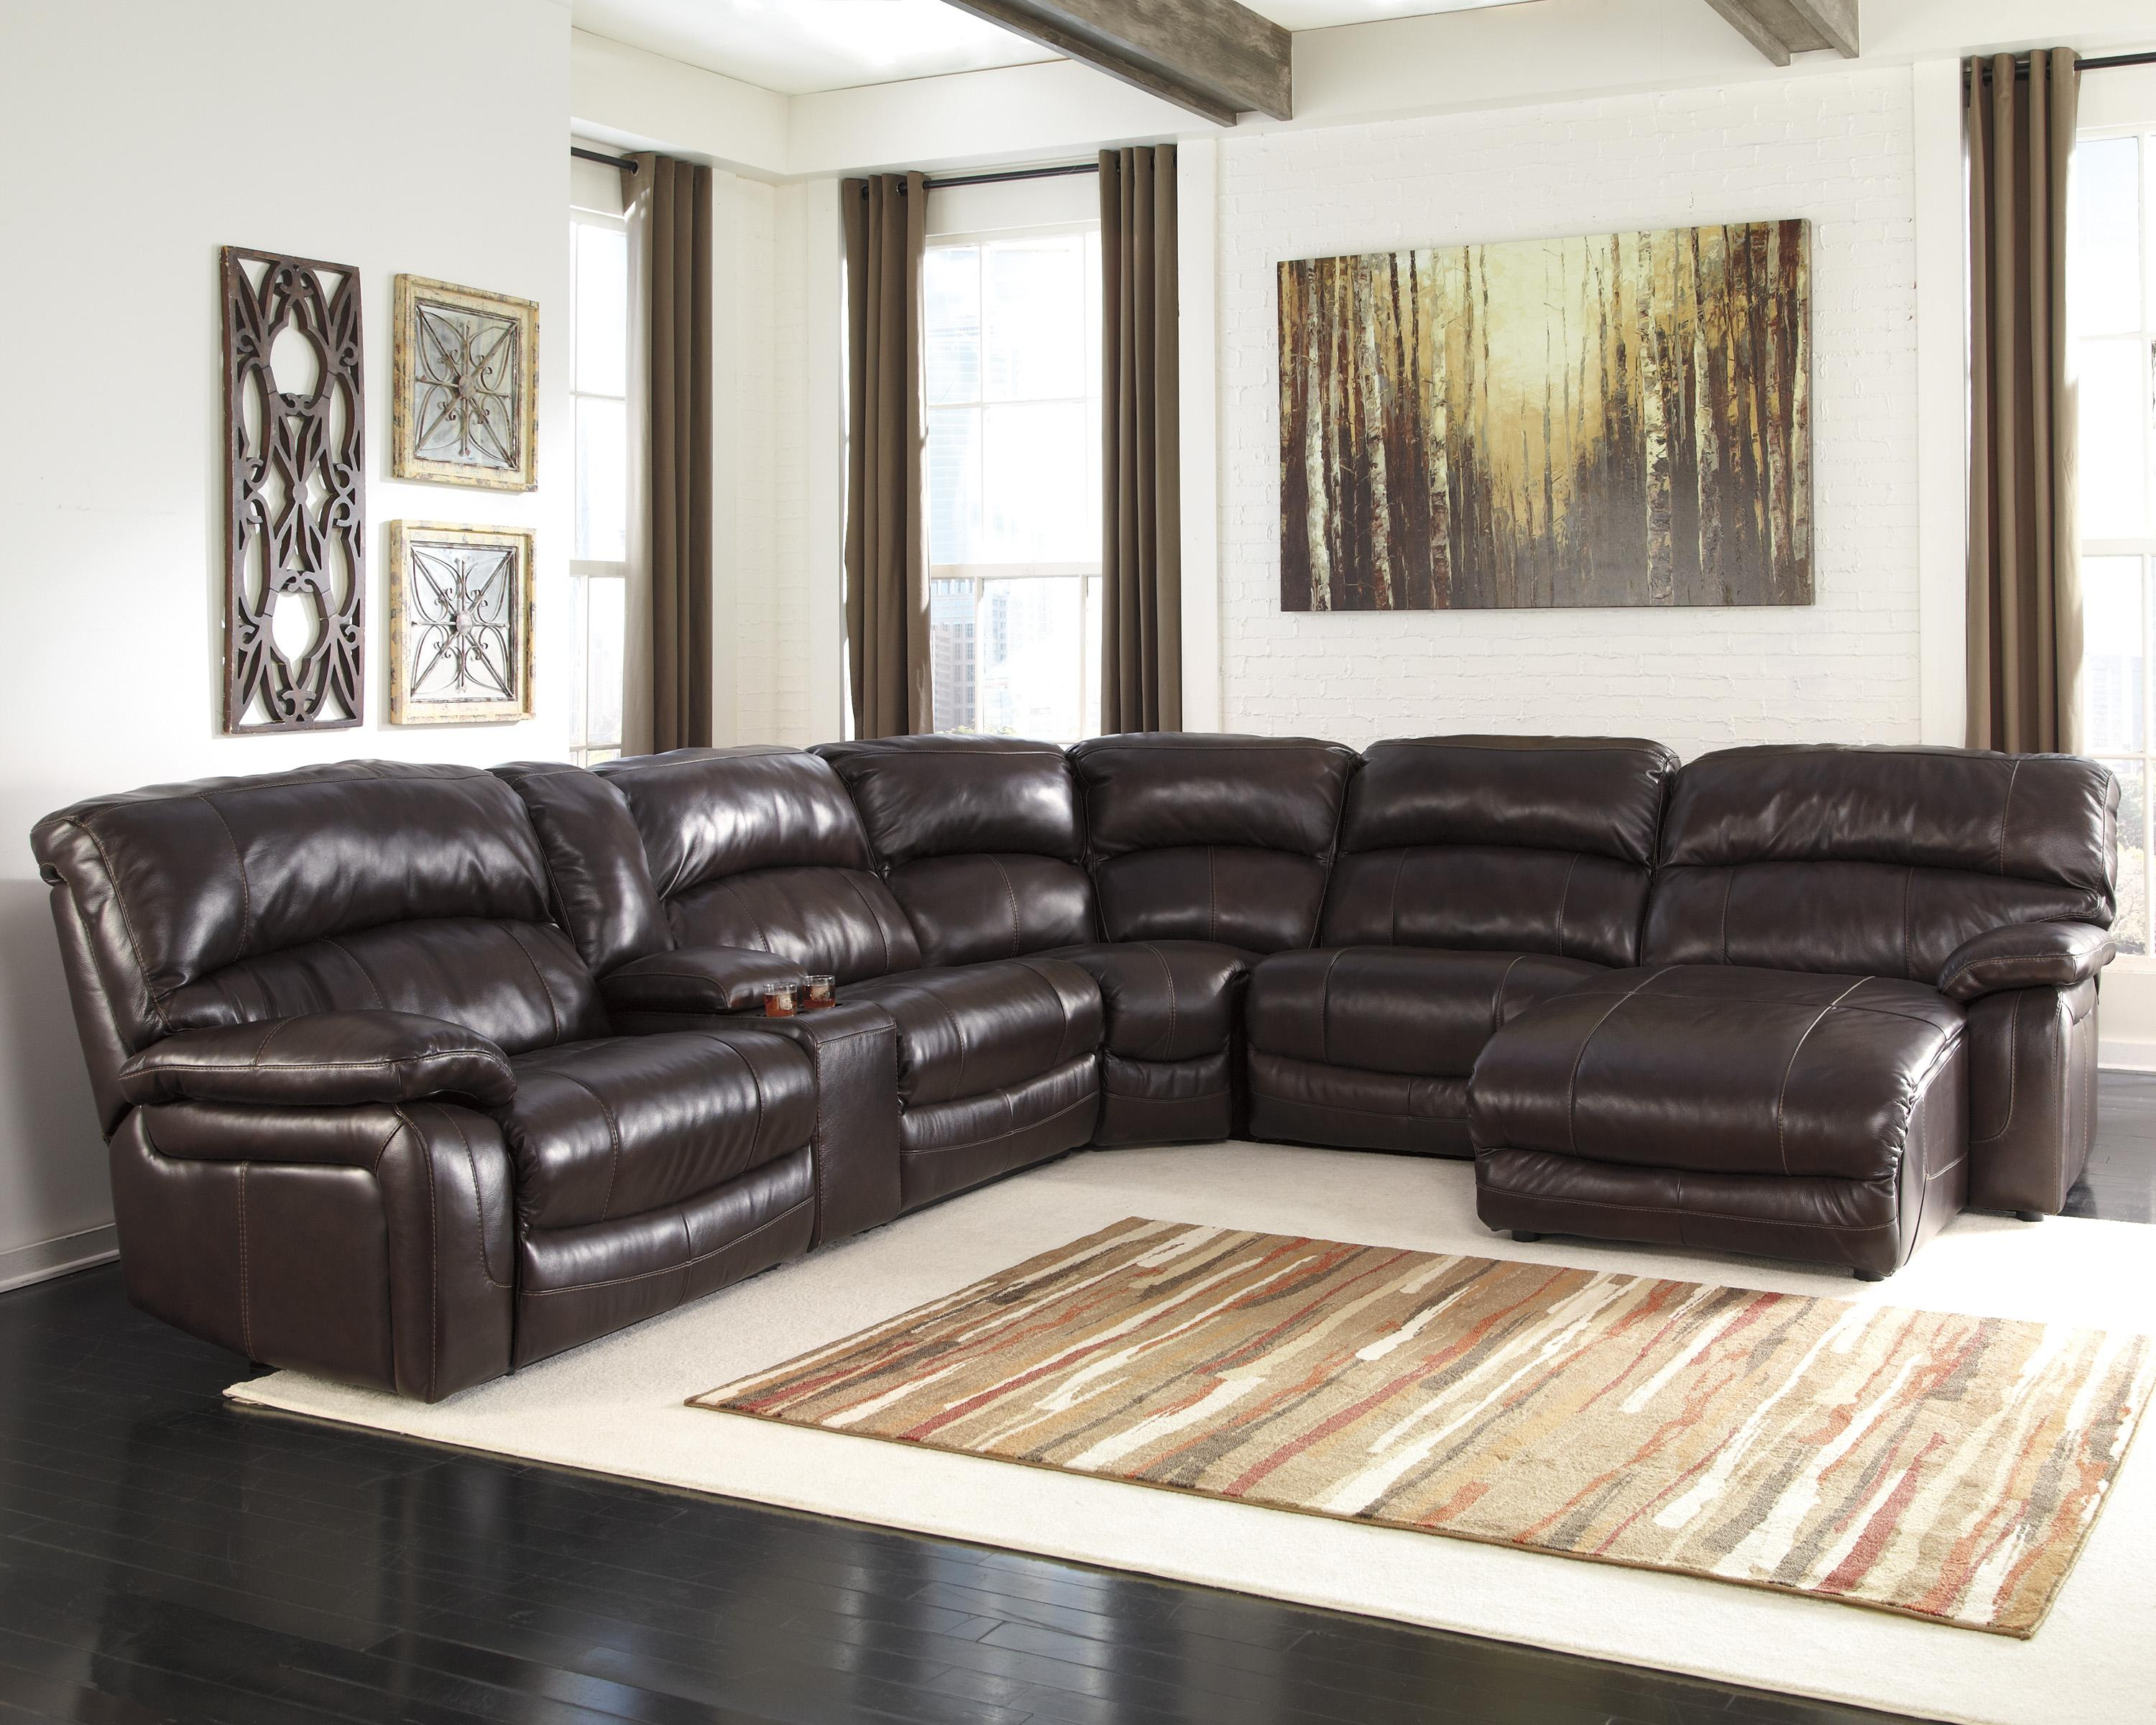 chaise leather of living room image with com sectional ideas brown